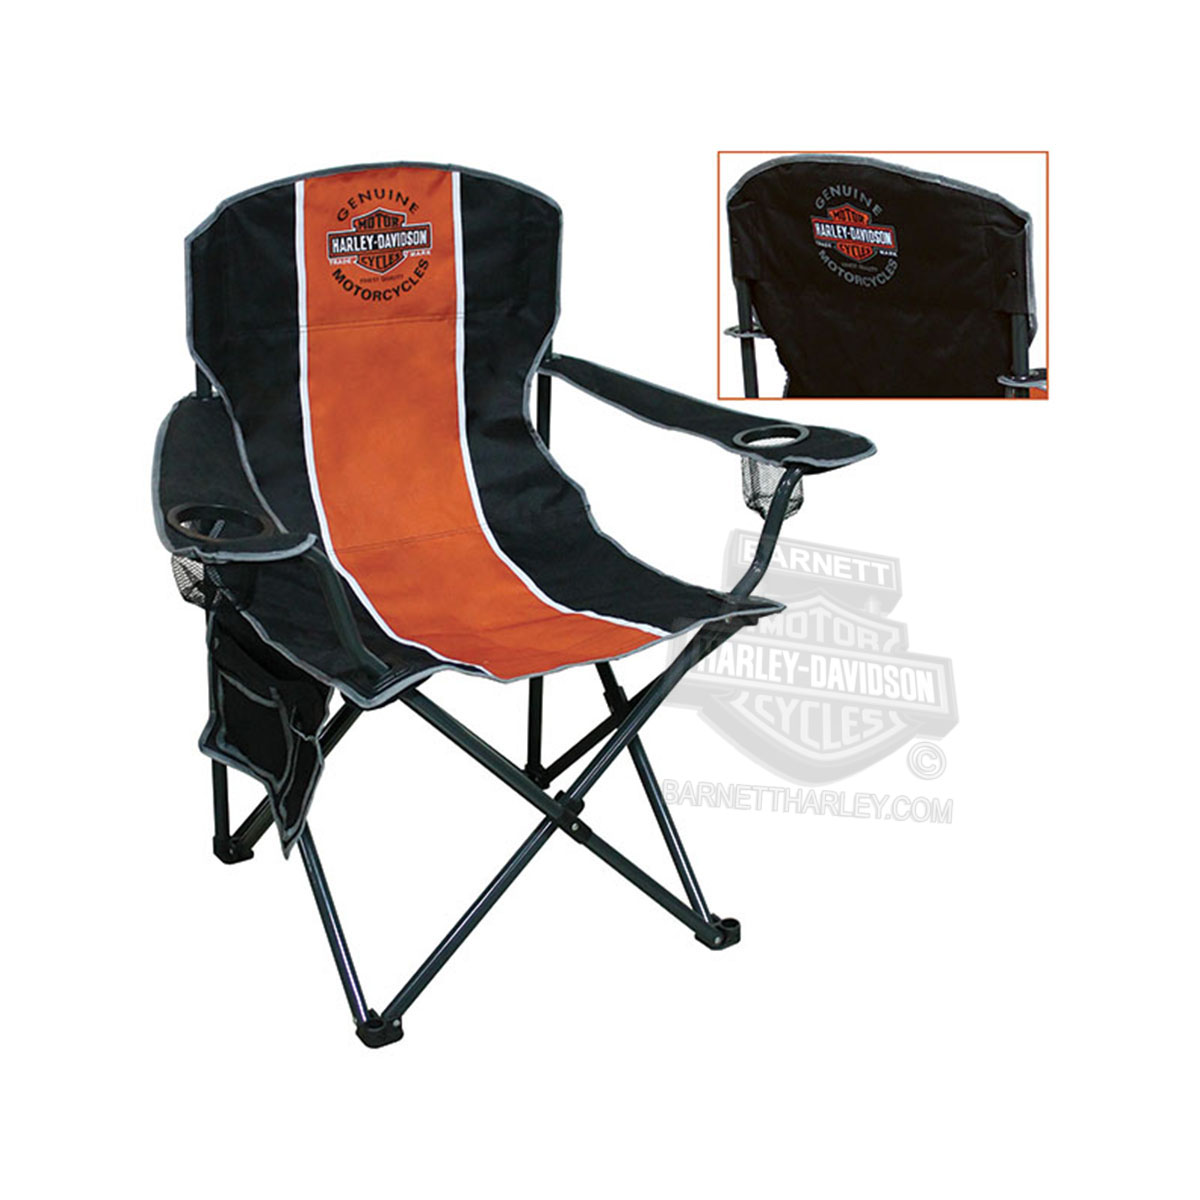 Harley Davidson Chairs Harley Davidson Patio Furniture Roselawnlutheran